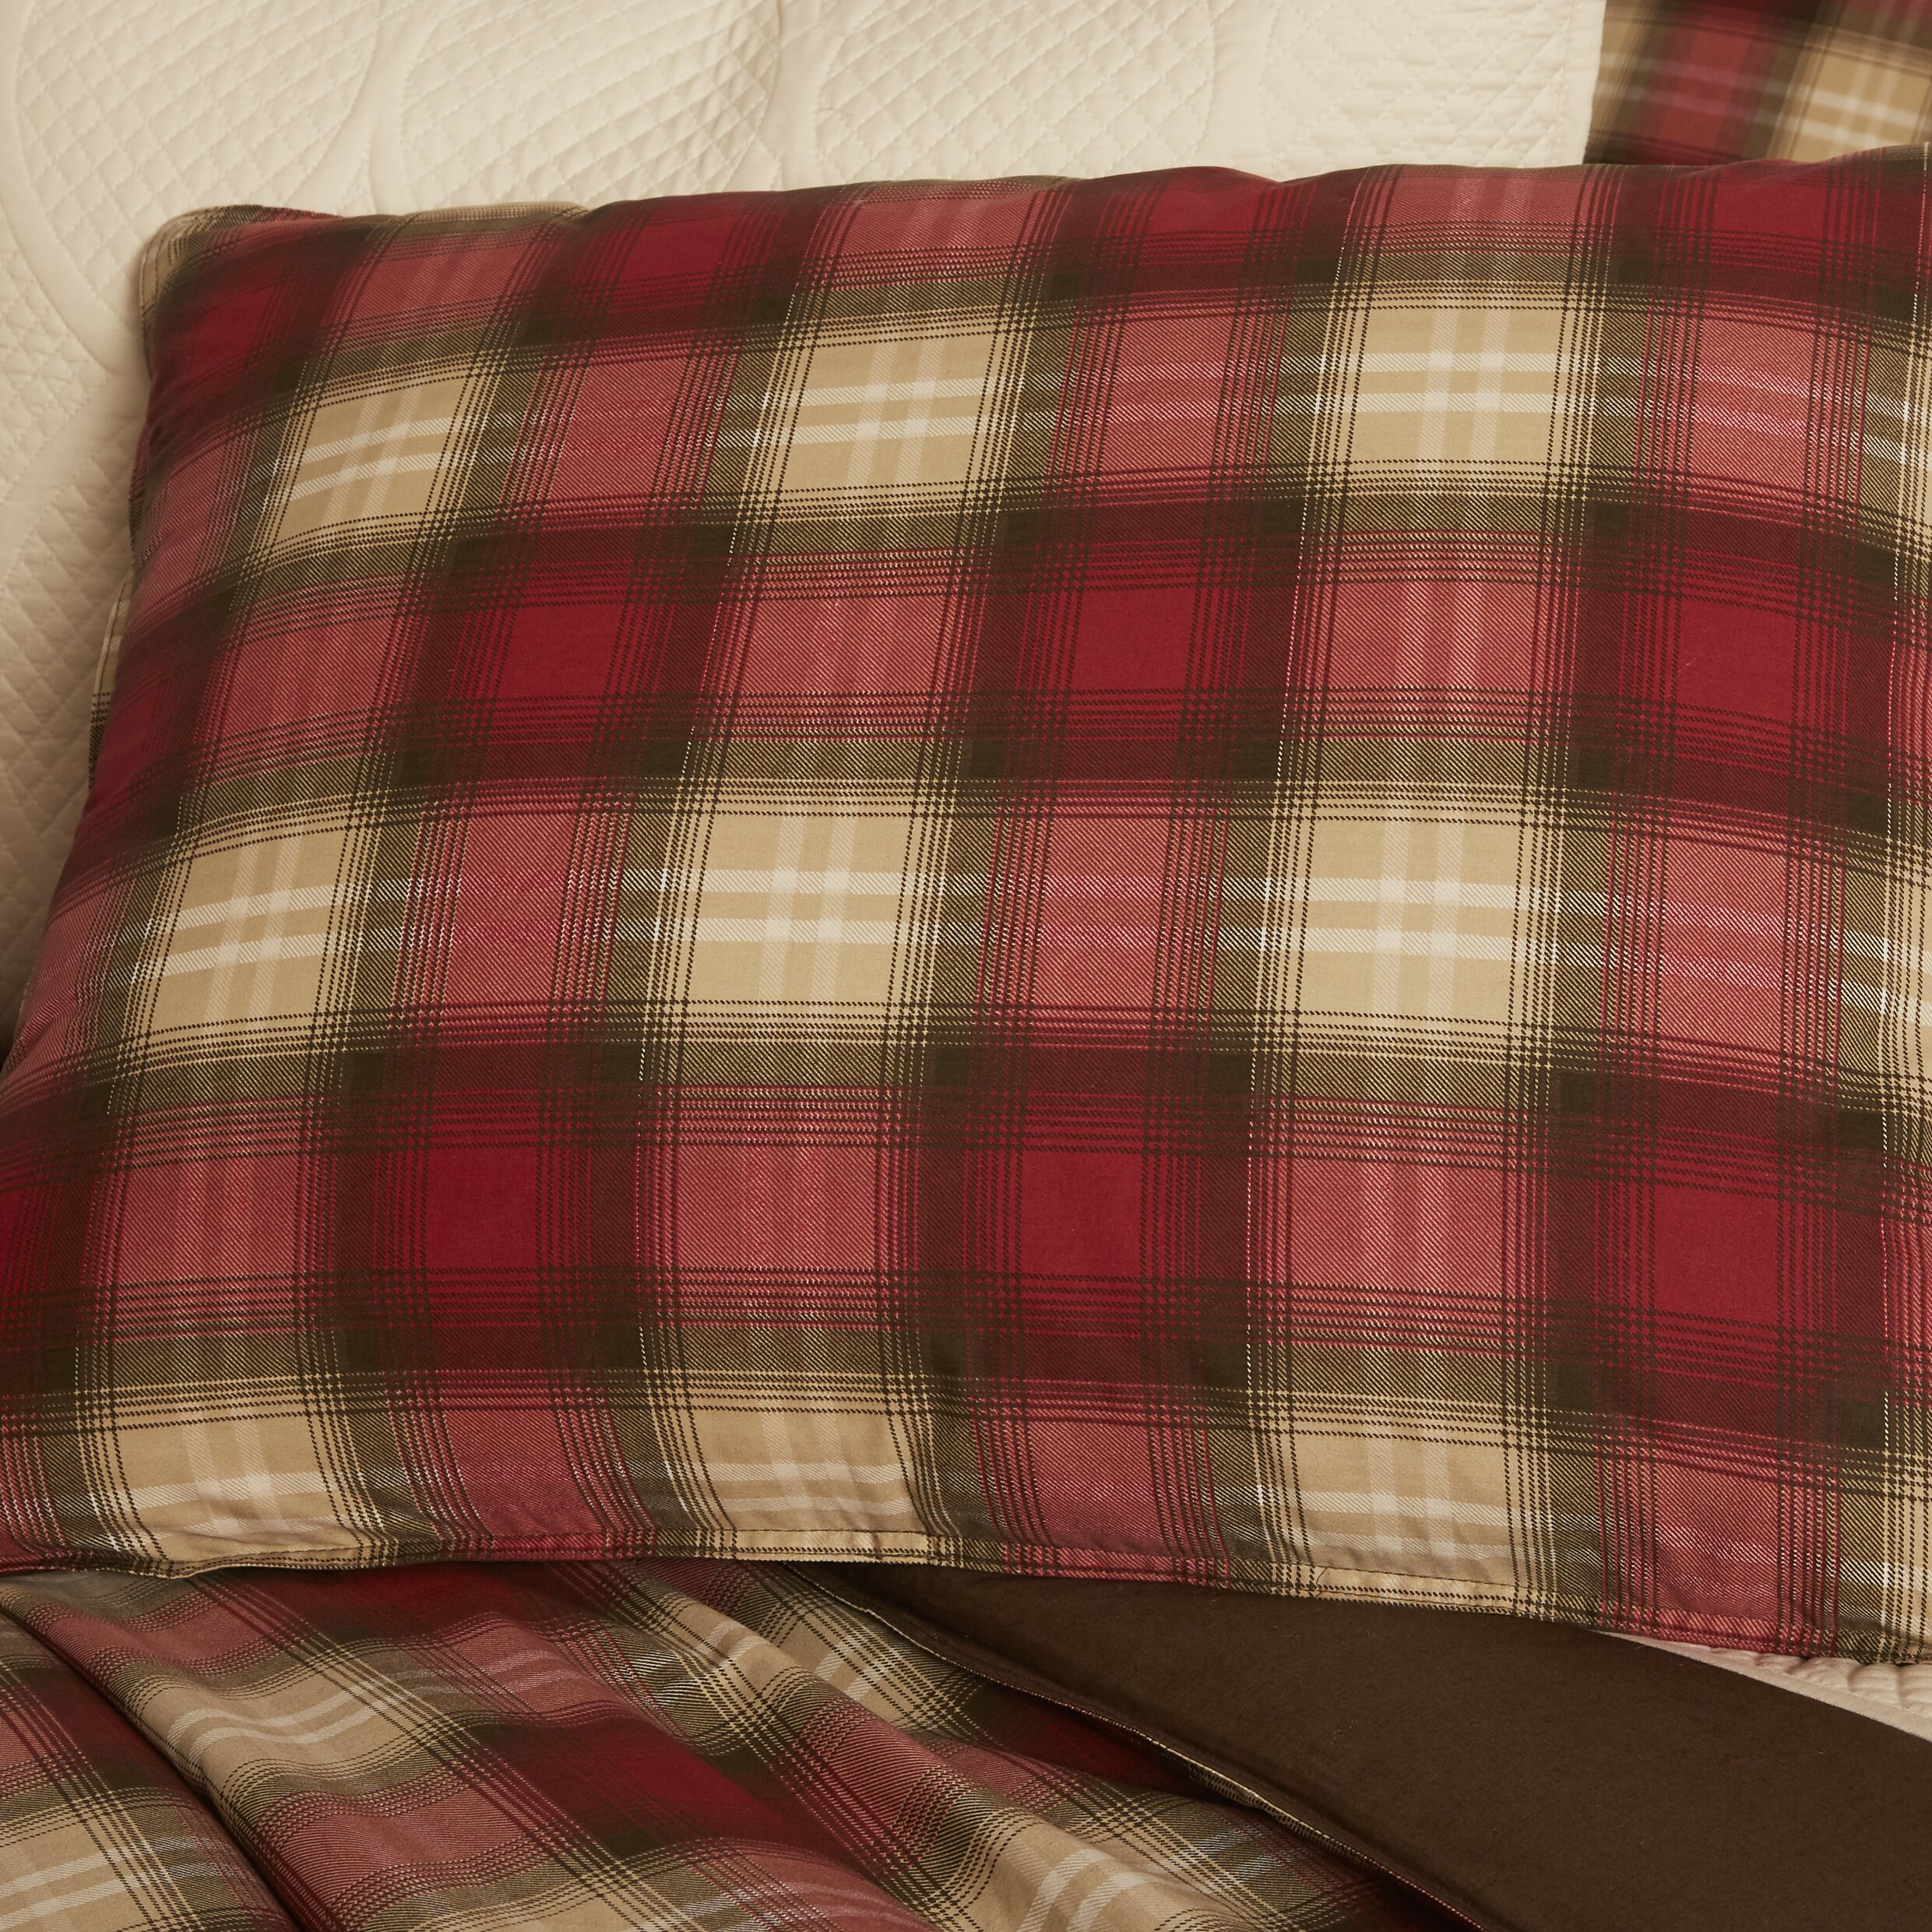 Twin Foam Mattress Eddie Bauer Navigation Plaid Reversible Comforter Set ...